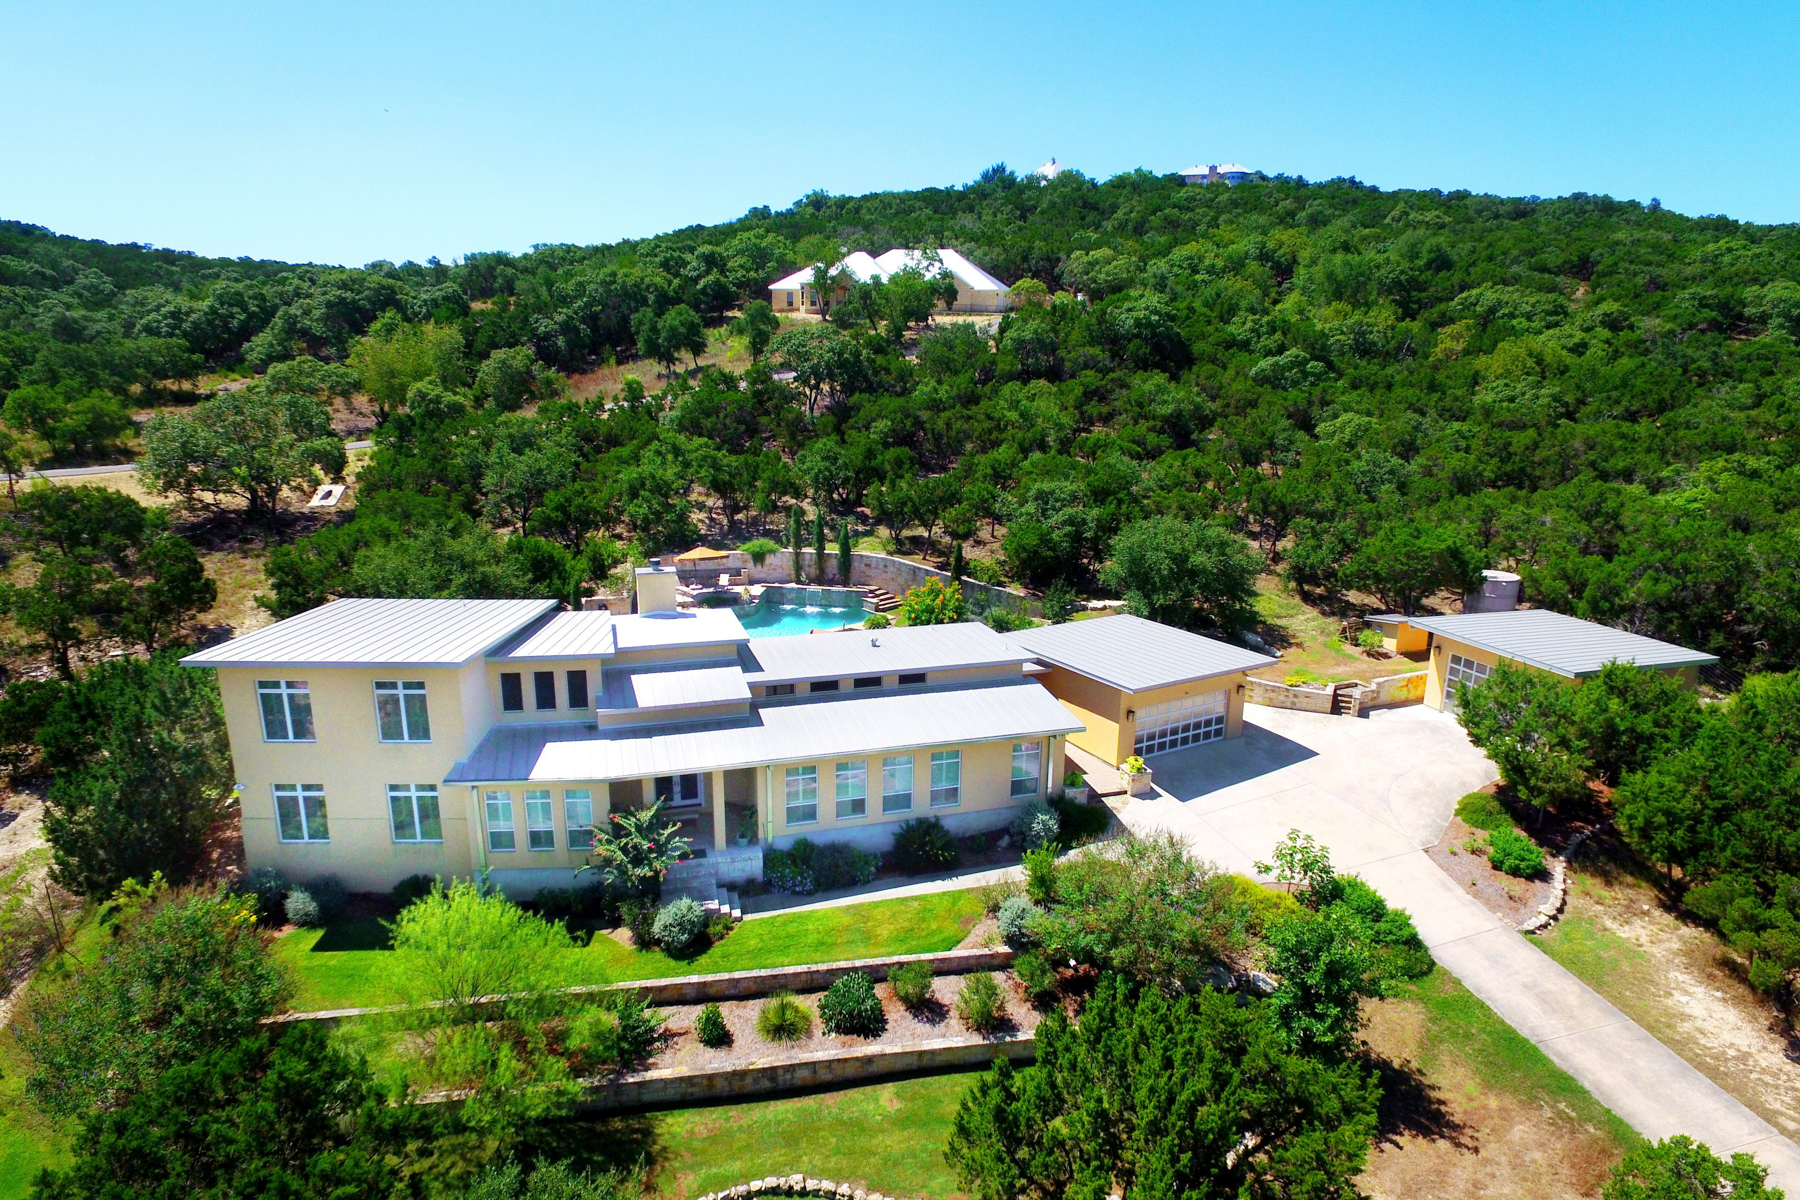 Single Family Home for Sale at Stunning Contemporary Estate 22619 Central Prairie San Antonio, Texas 78255 United States